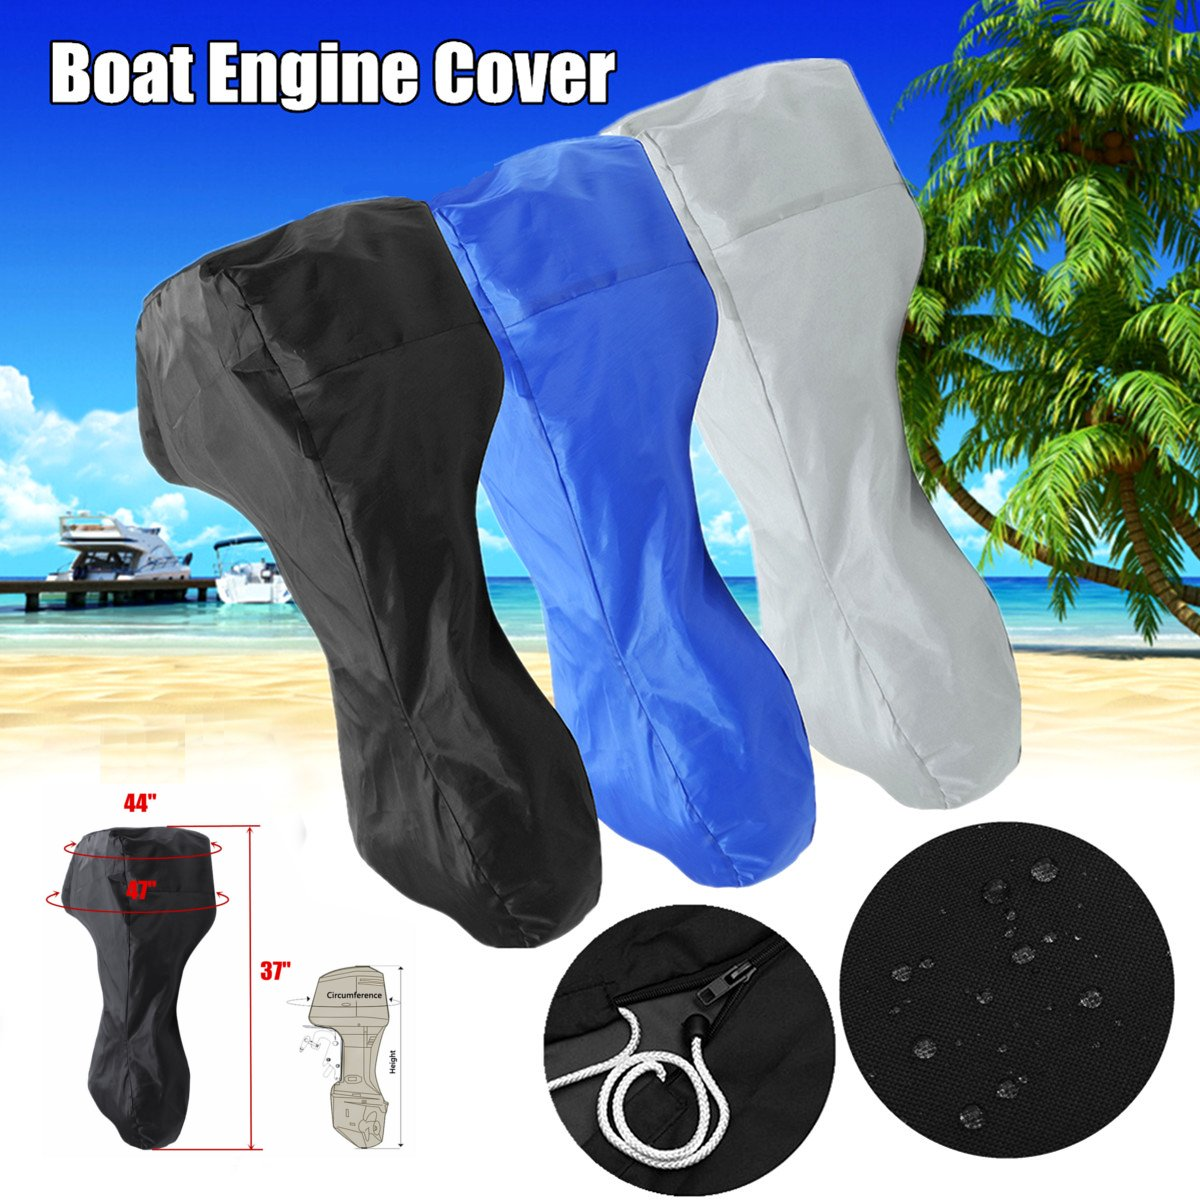 60-150HP Boat Engine Cover Full Outboard Motor Cover Waterproof Oxford Cloth 3 Color/Size